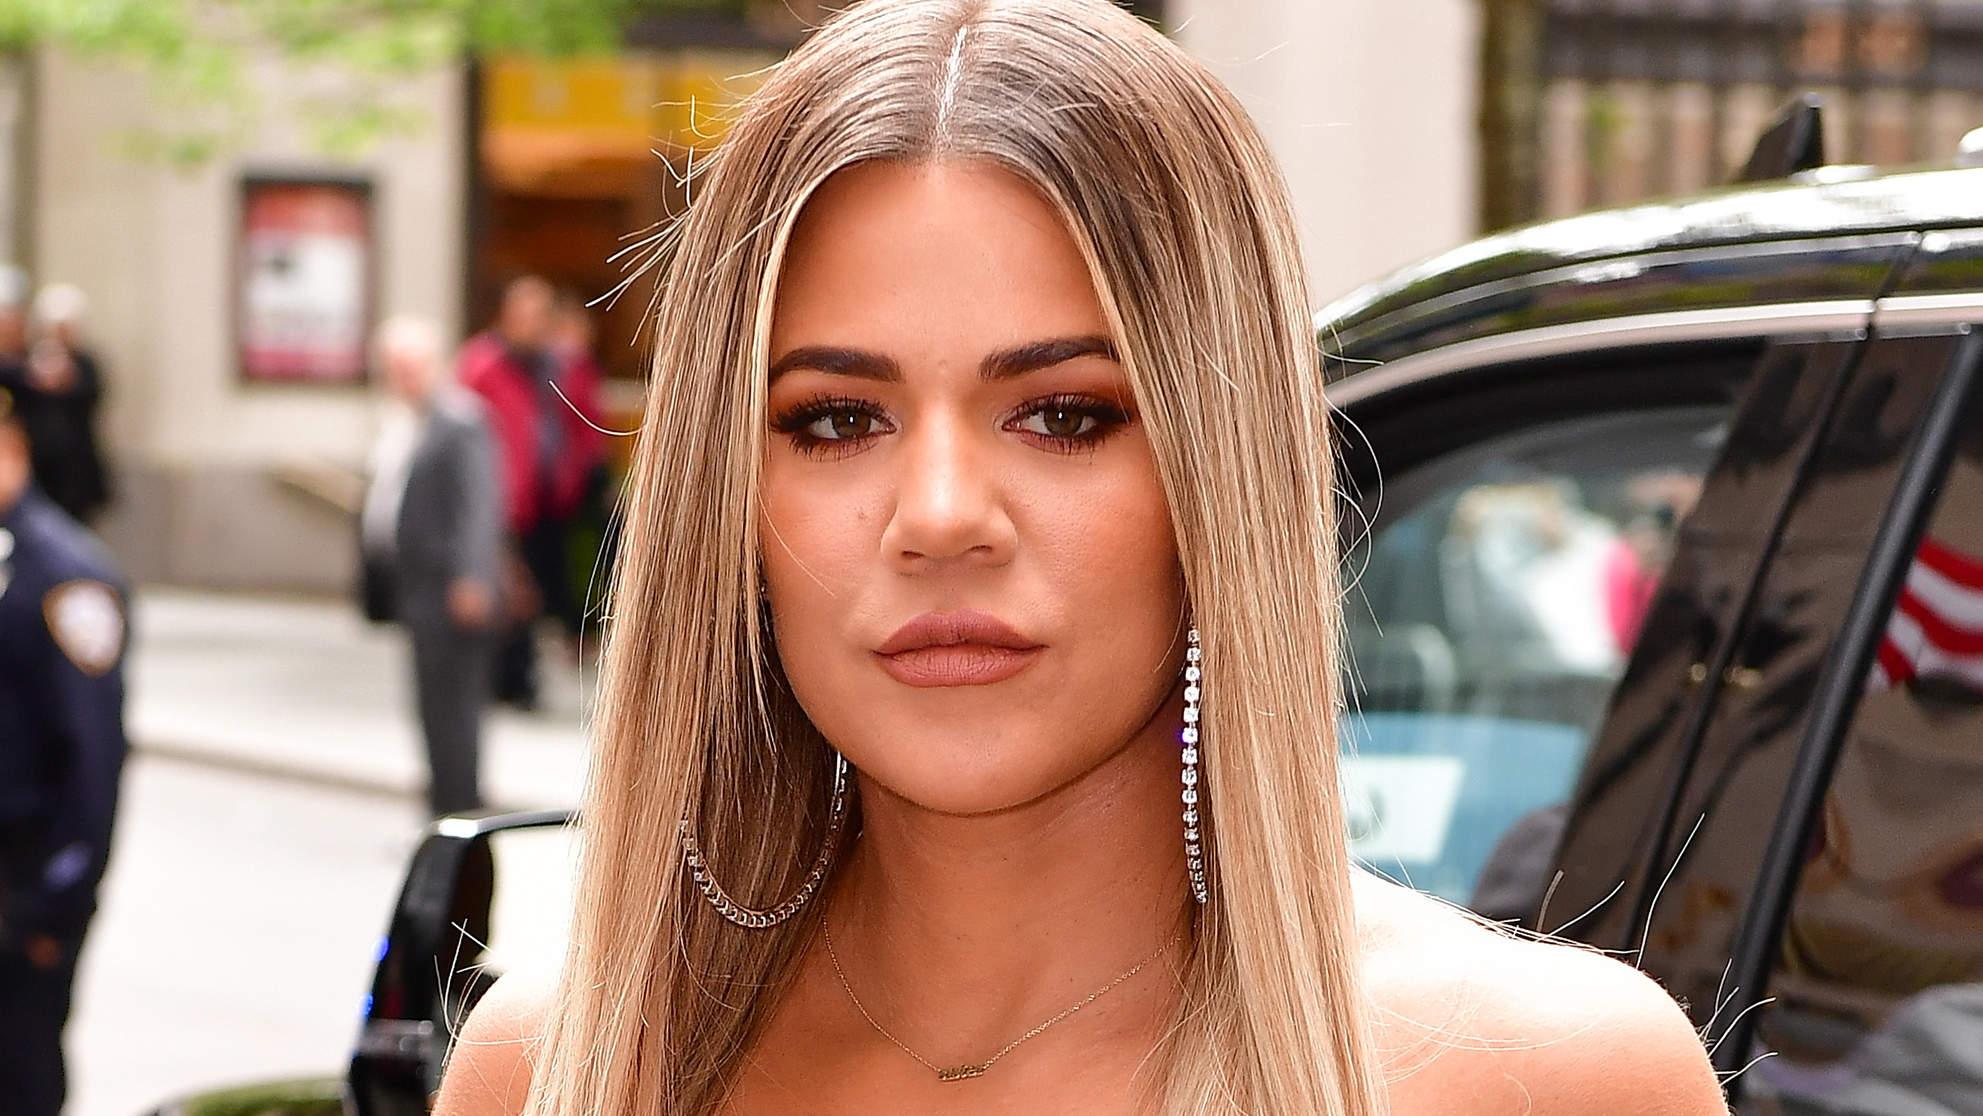 Why Khloé Kardashian Wore an Oxygen Mask While in Labor with Baby True Thompson